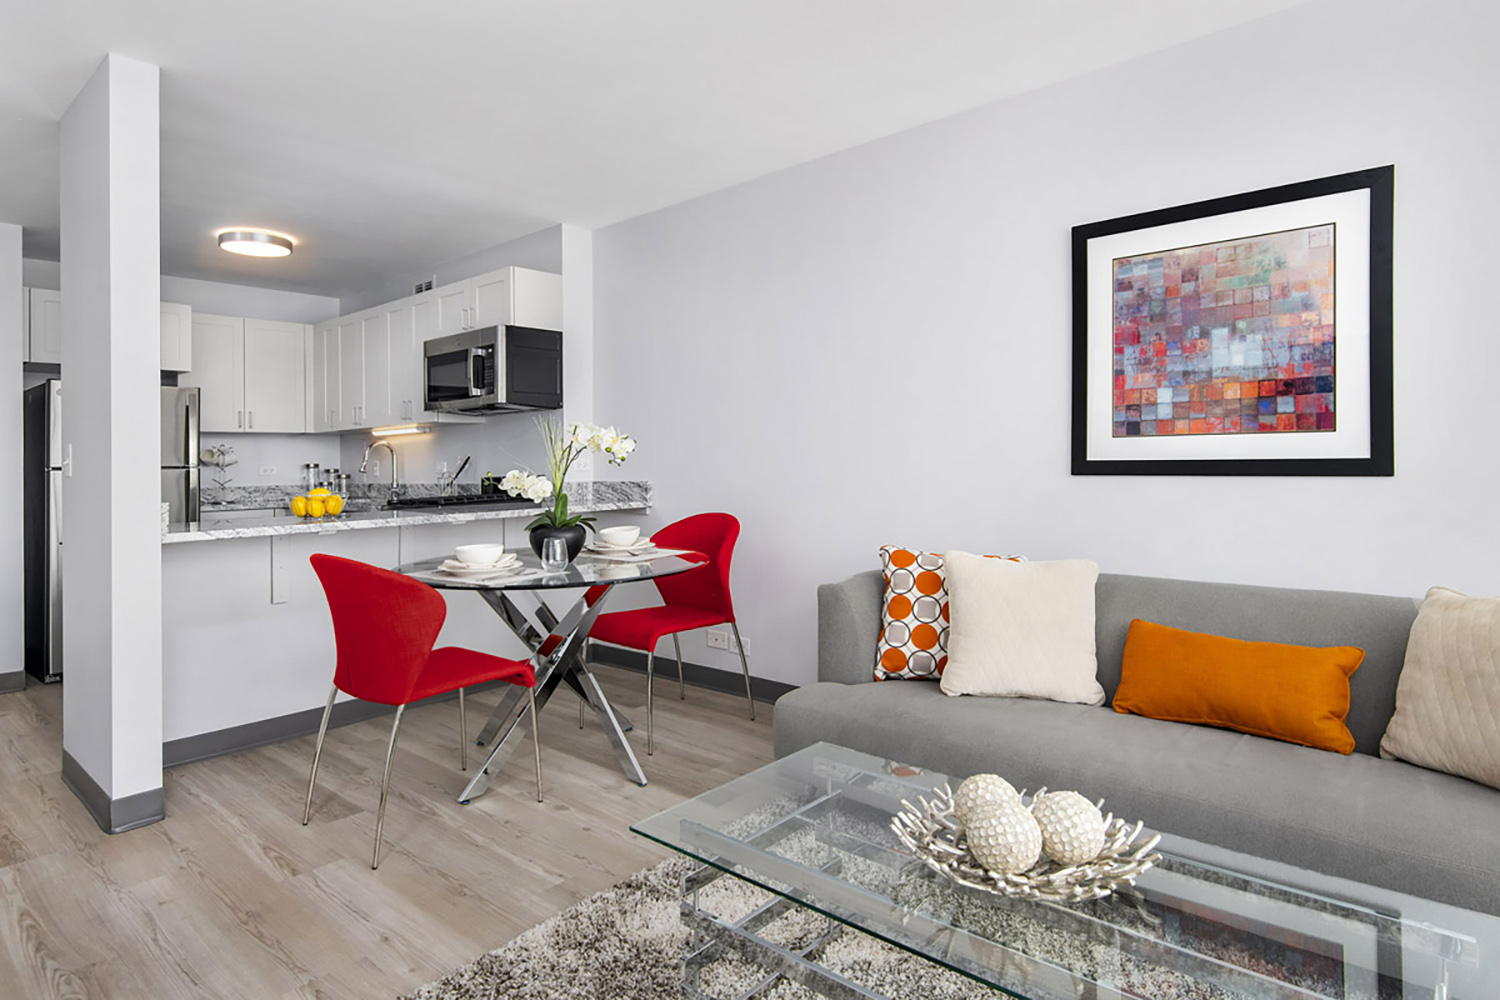 Newly-Renovated Interior at Prairie Shores Apartments. Image by Farpoint Development